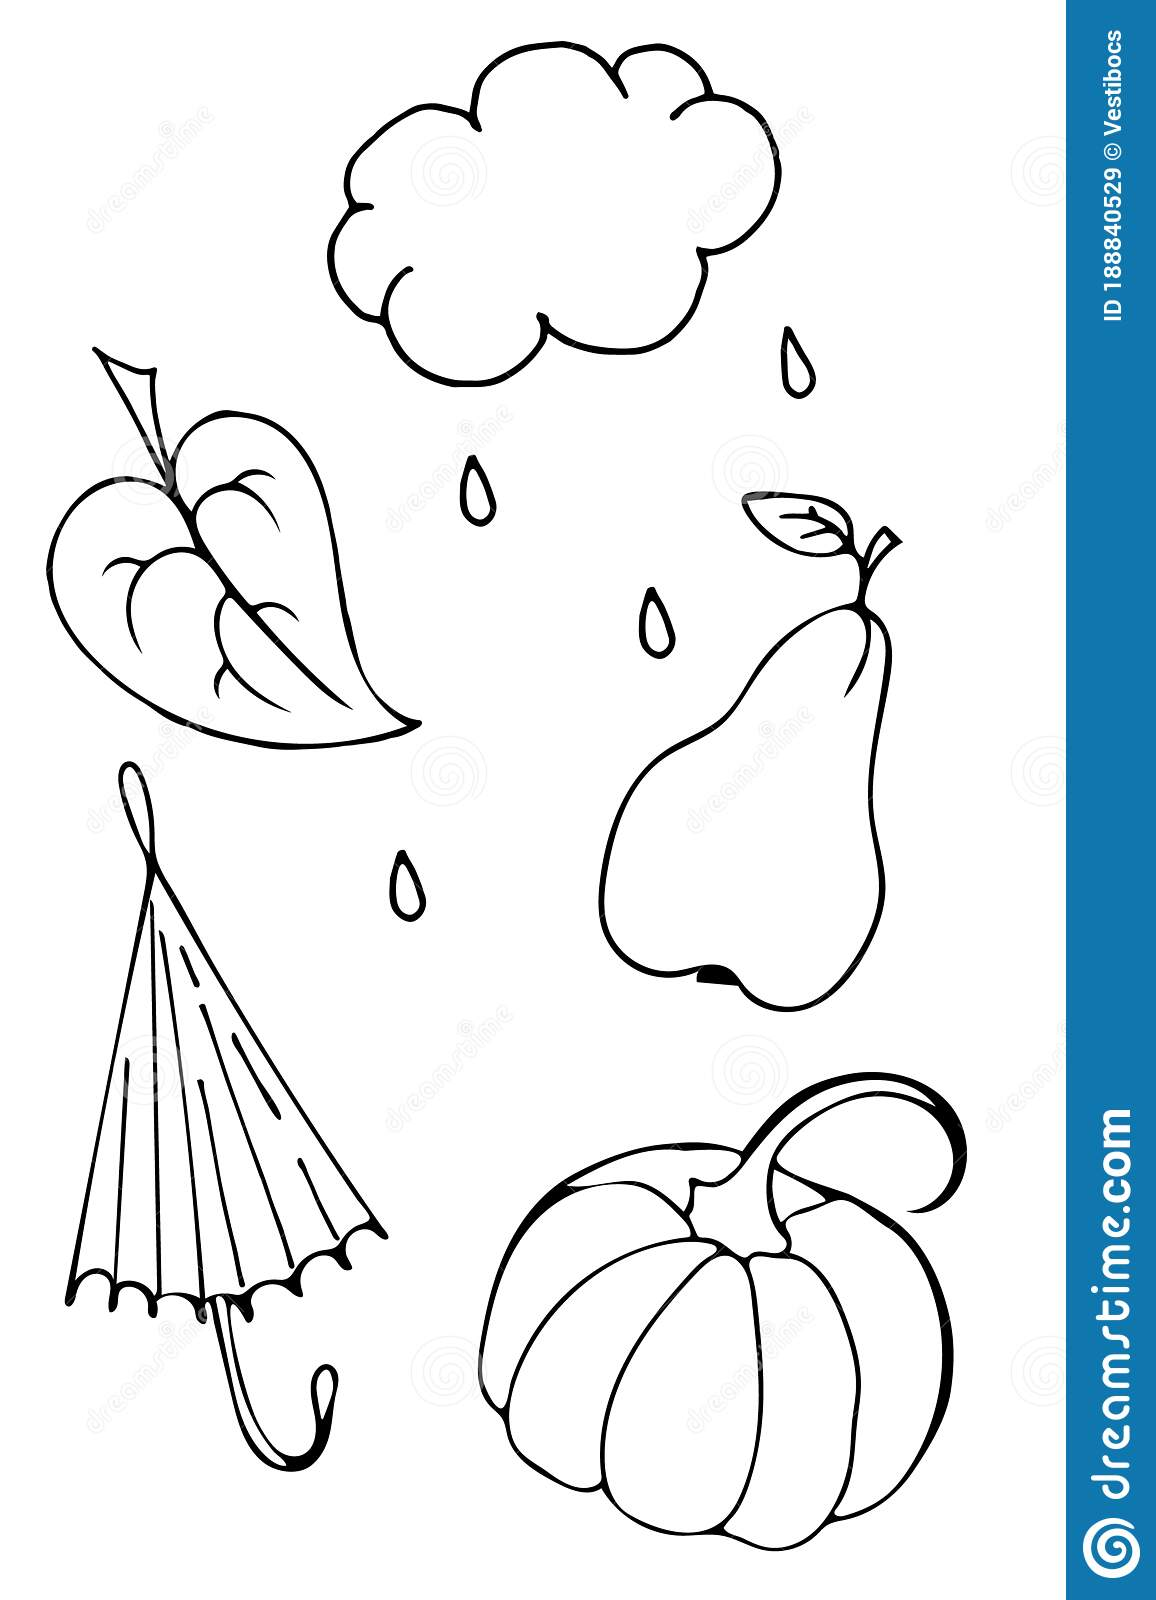 Autumn Set Of Outline Hand Drawing Images In Form Of Coloring Pages Stock Vector Illustration Of Nature Funny 188840529